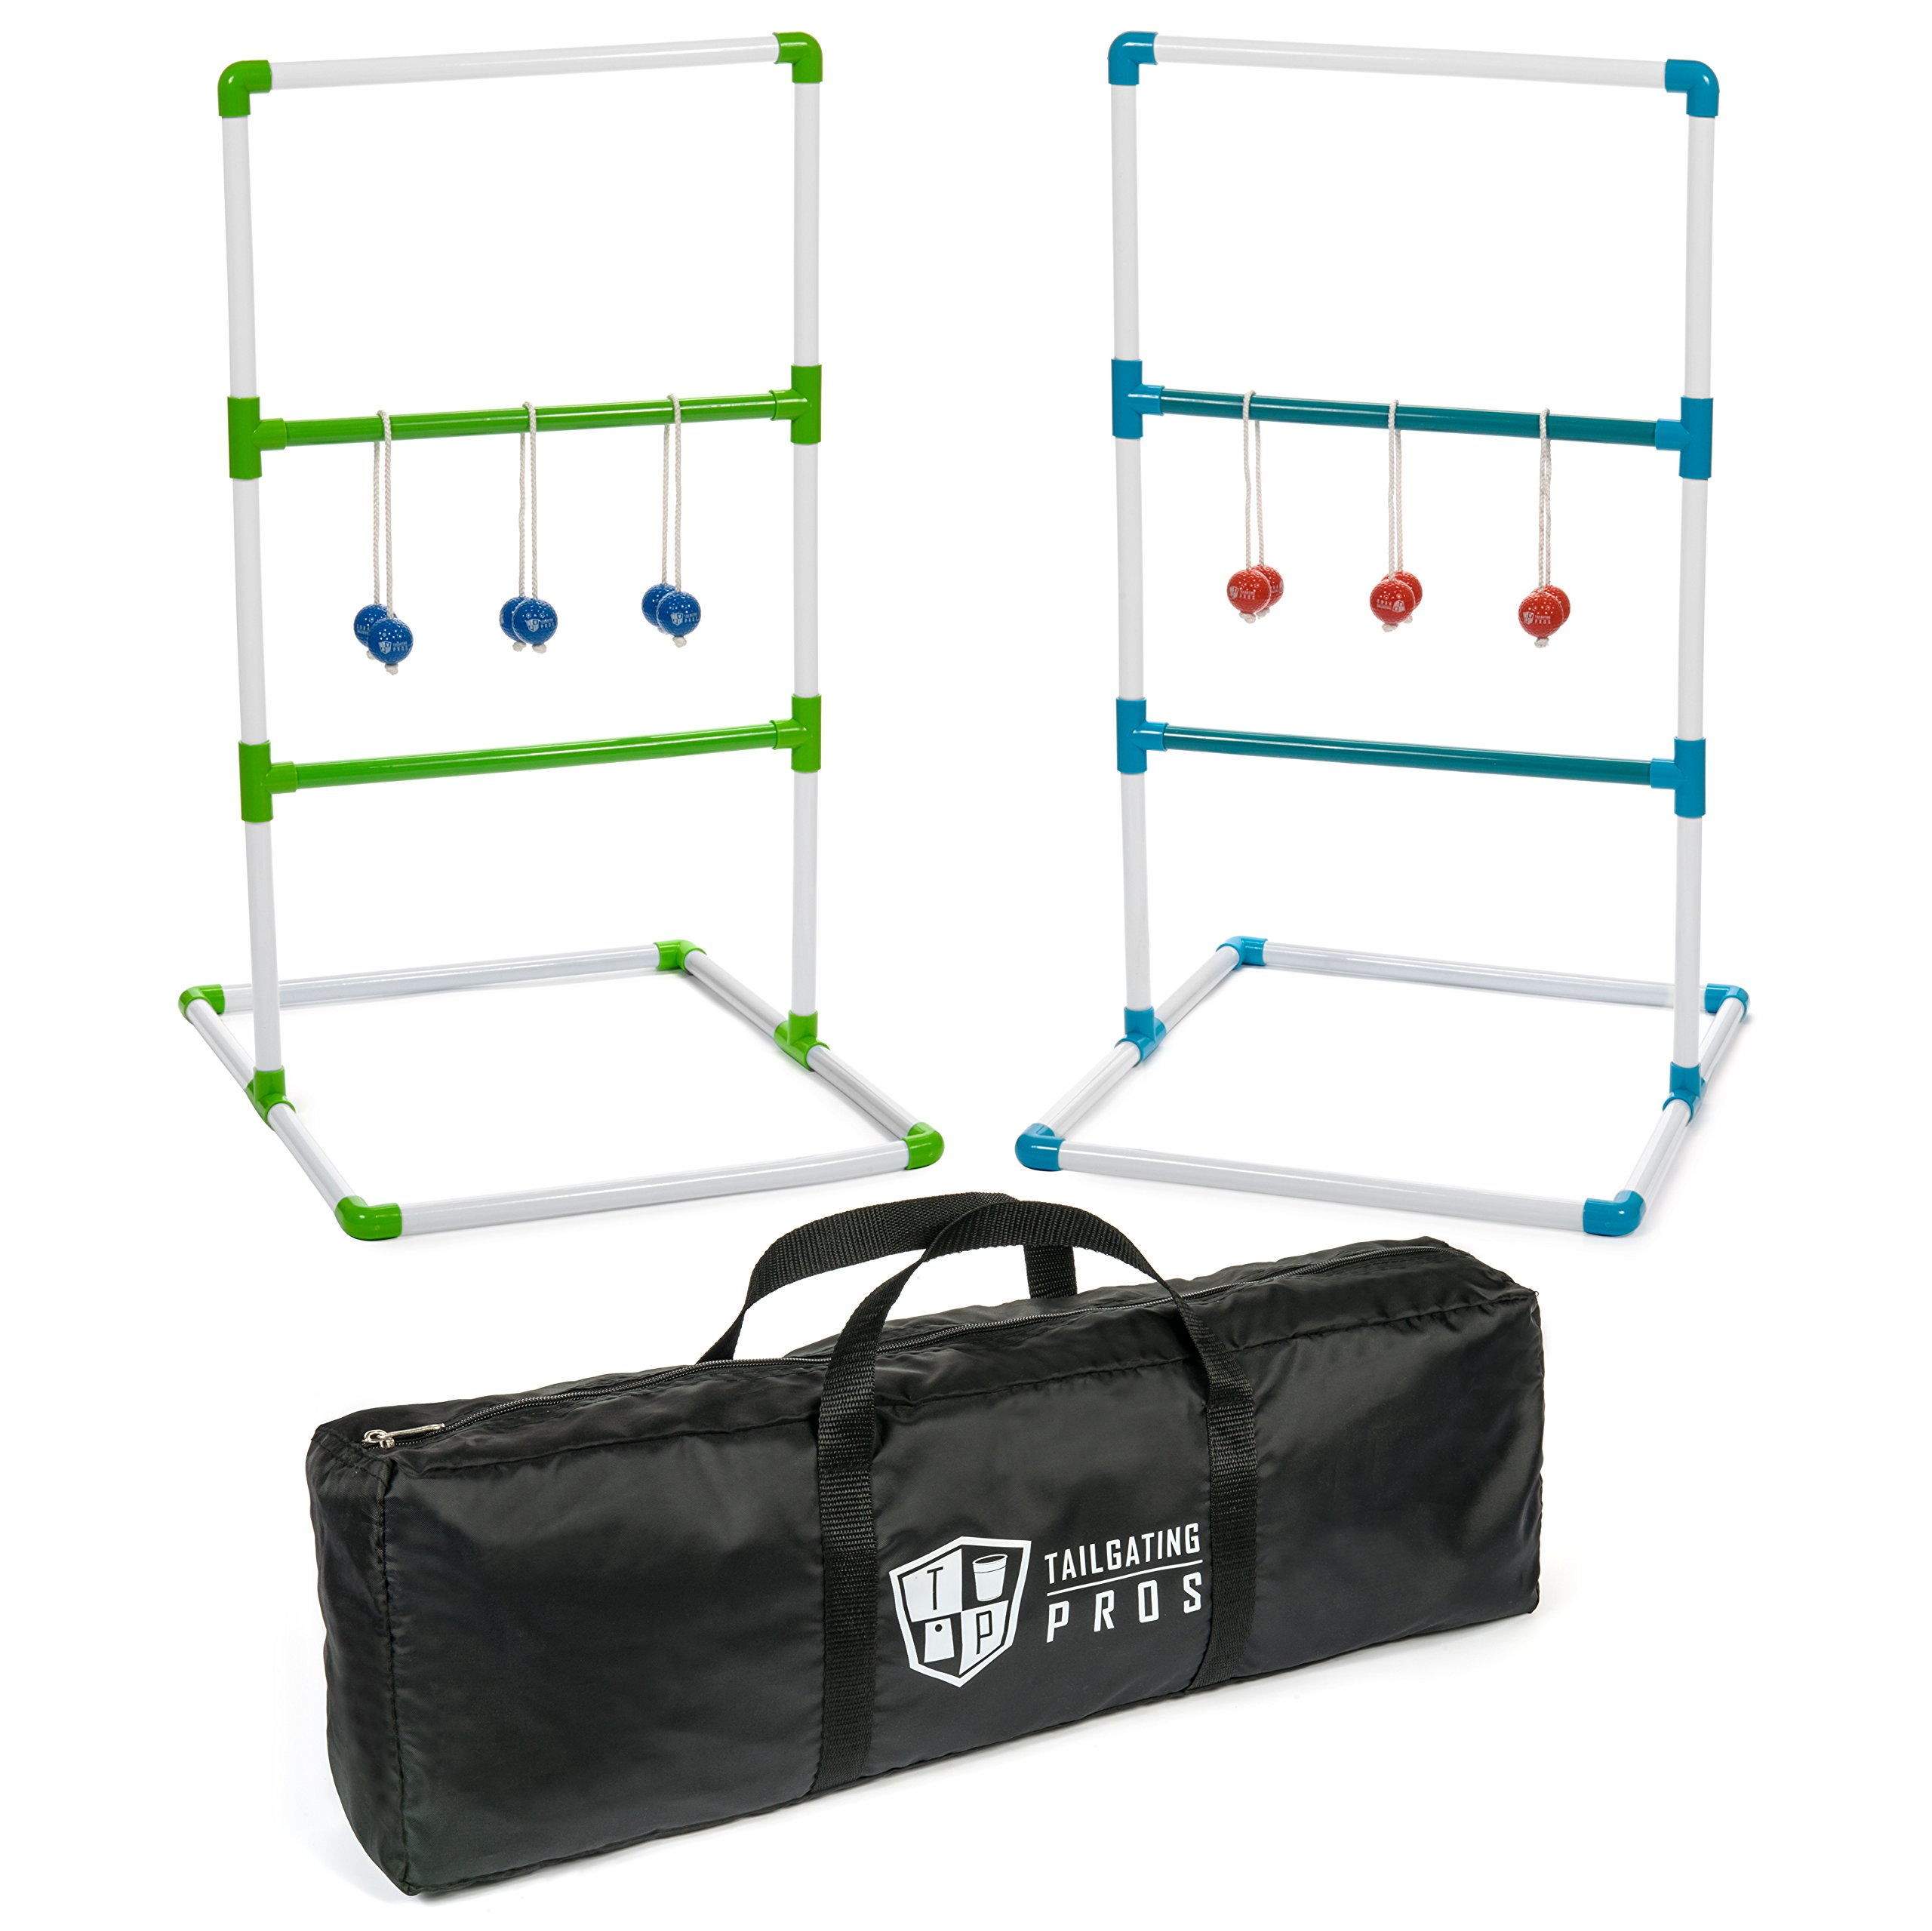 Tailgating Pros Premium Ladder Toss Game with Bolos and Carrying Case by Tailgating Pros